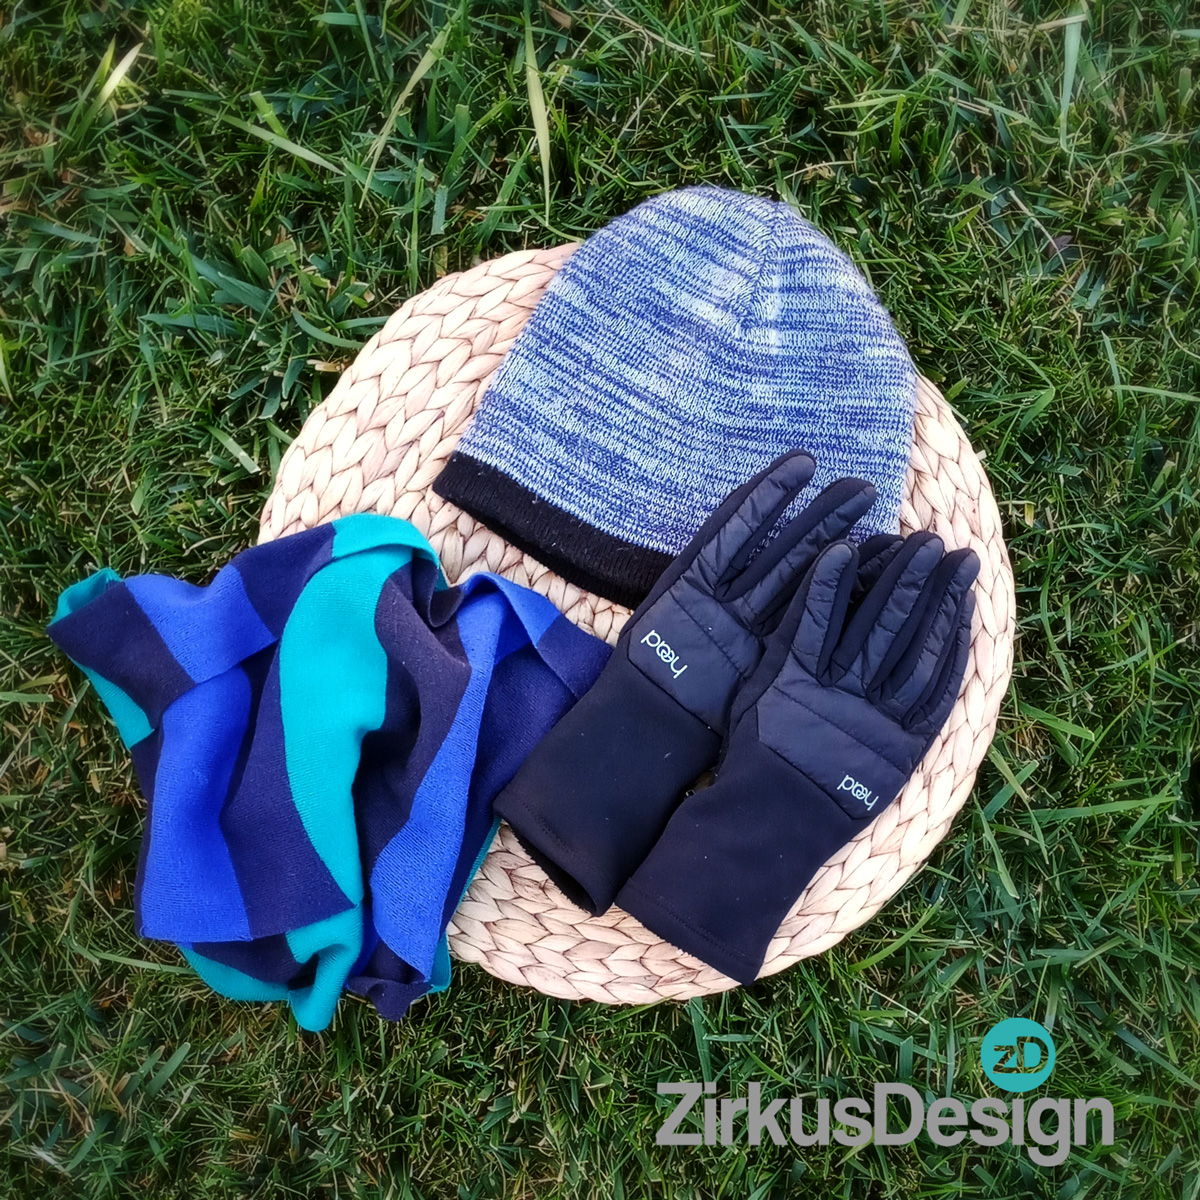 What to Pack for a Family Day Hike - FREE Printable Checklist! - ZirkusDesign.com - Essential Warm Clothing for Hiking with Kids